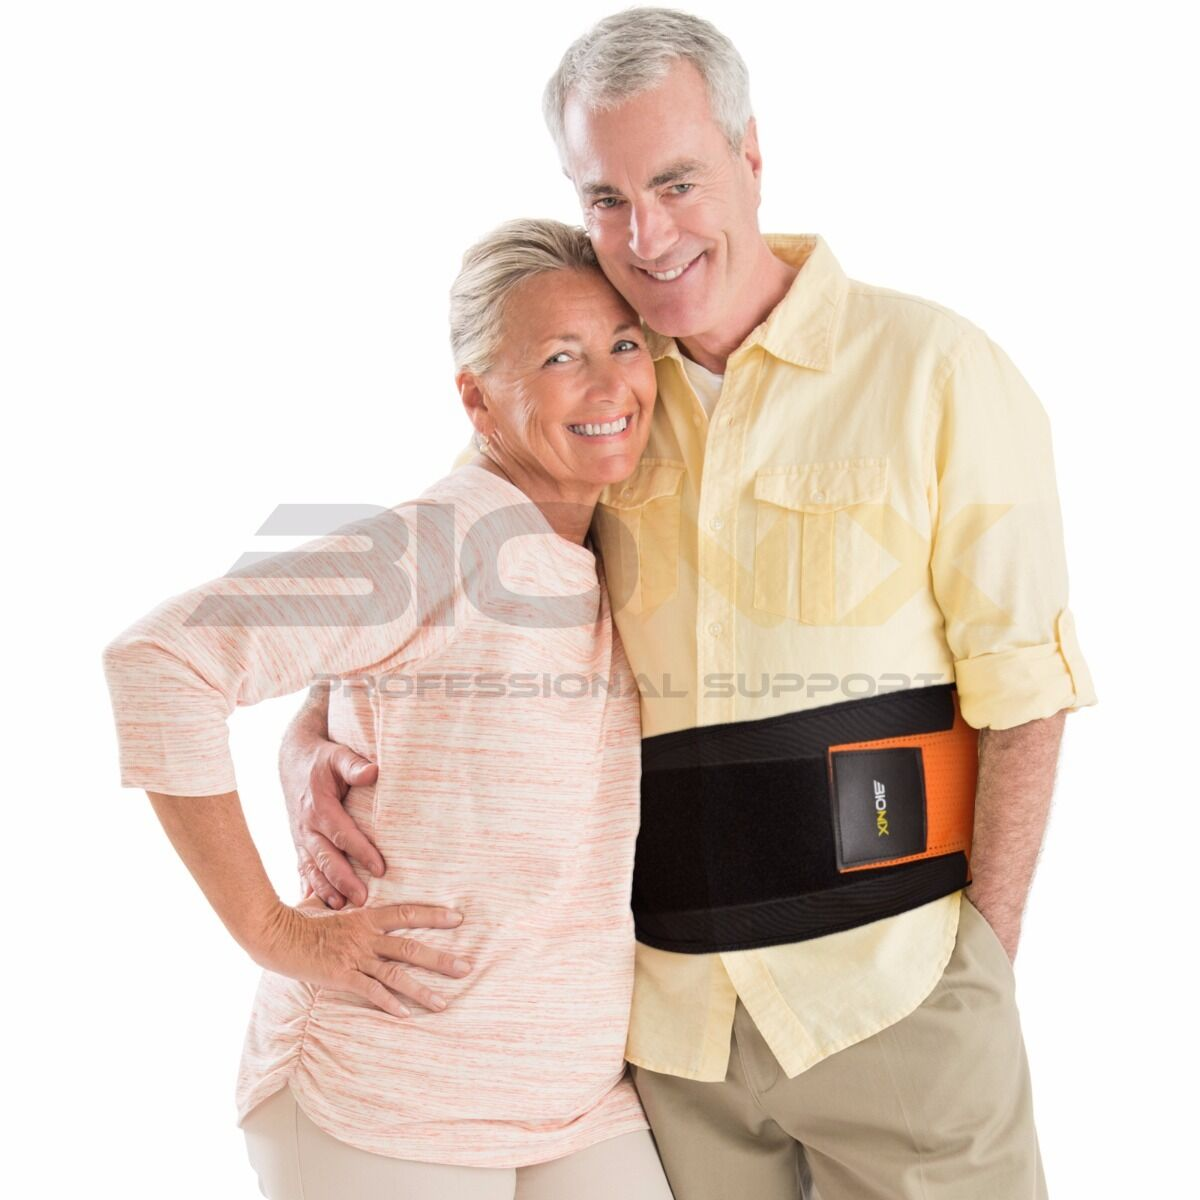 Adjustable Bed Upper Back Pain : Lumbar back support belt lower pain relief adjustable